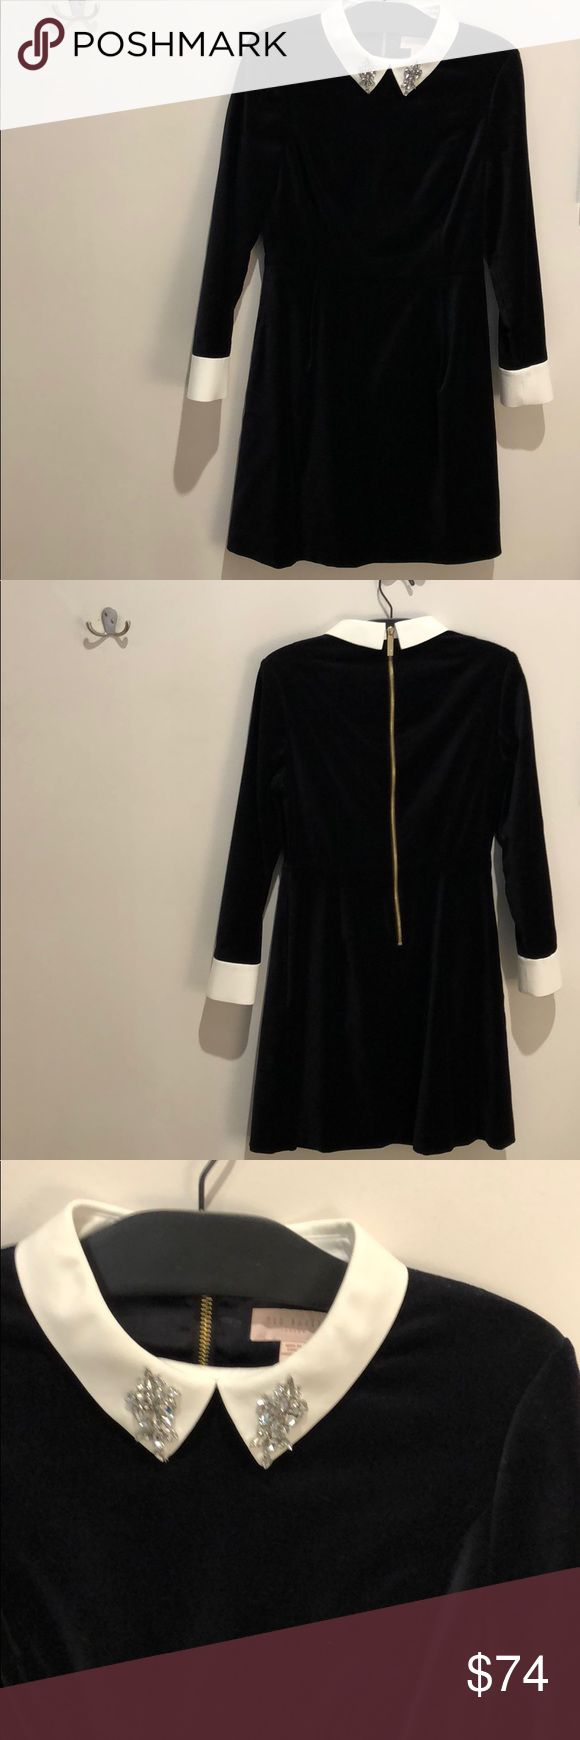 Velvet Ted Baker Dress Navy velvet long sleeve dress with white cuffs and collar. Silver jewel embellishment on collar. Exposed gold zipper at back. Fitted at top with slightly a-line skirt. Brand new with tags. Please see photo with size conversion! Ted Baker Dresses Long Sleeve